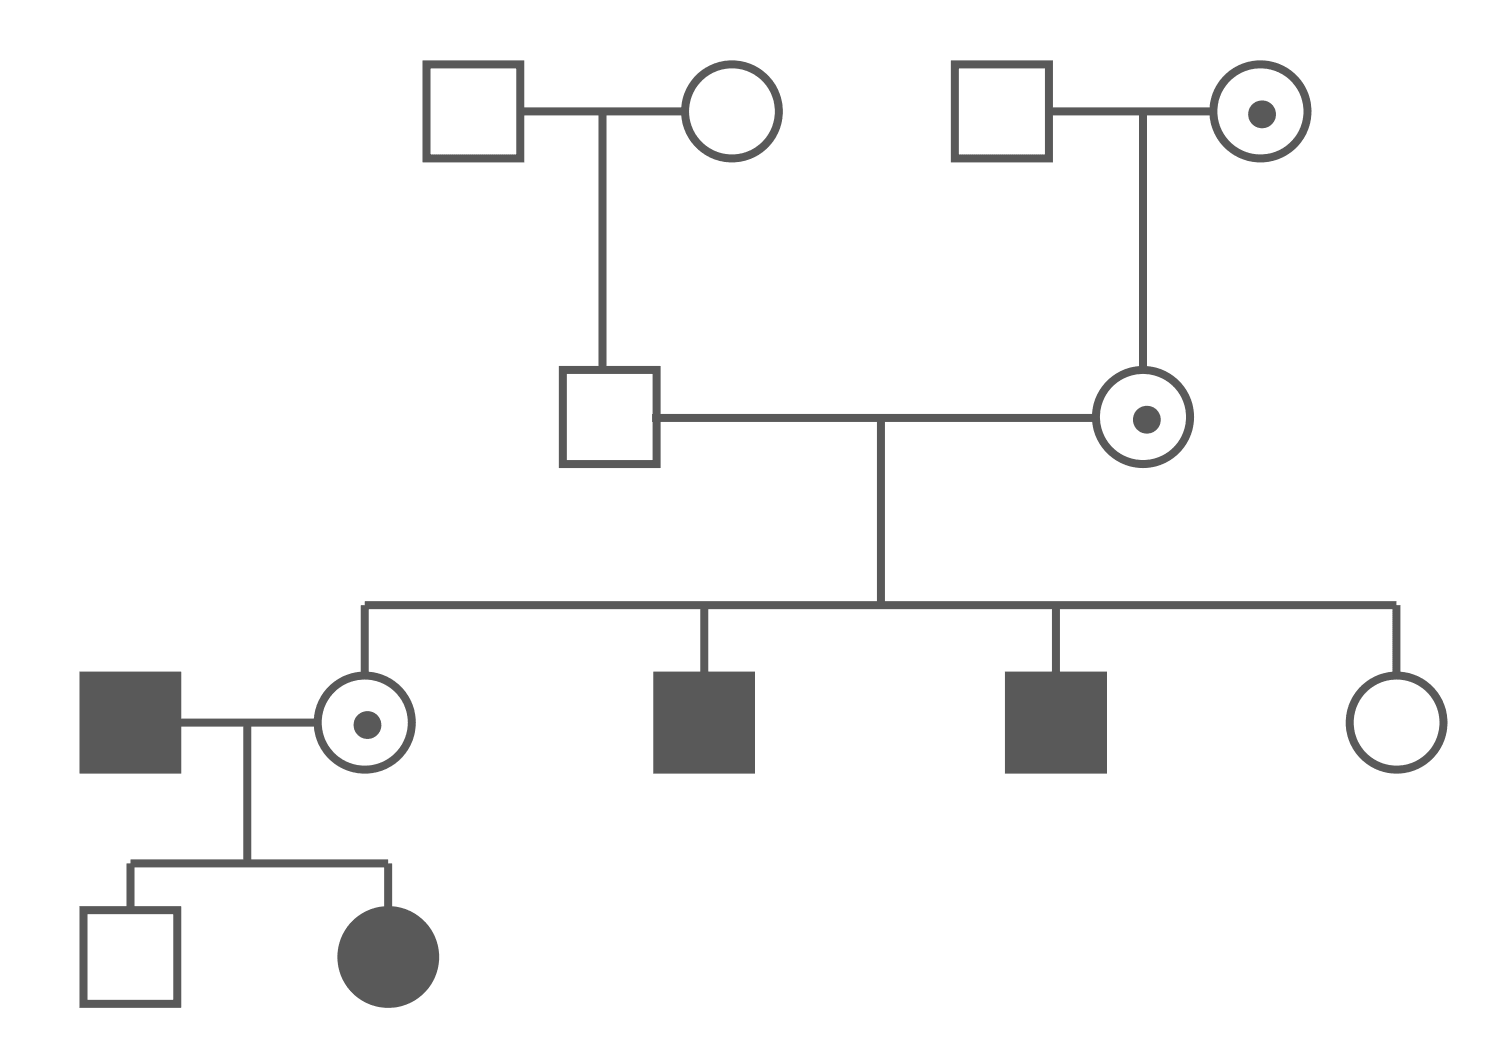 X-Linked Recessive Pedigree Chart SimpleMed